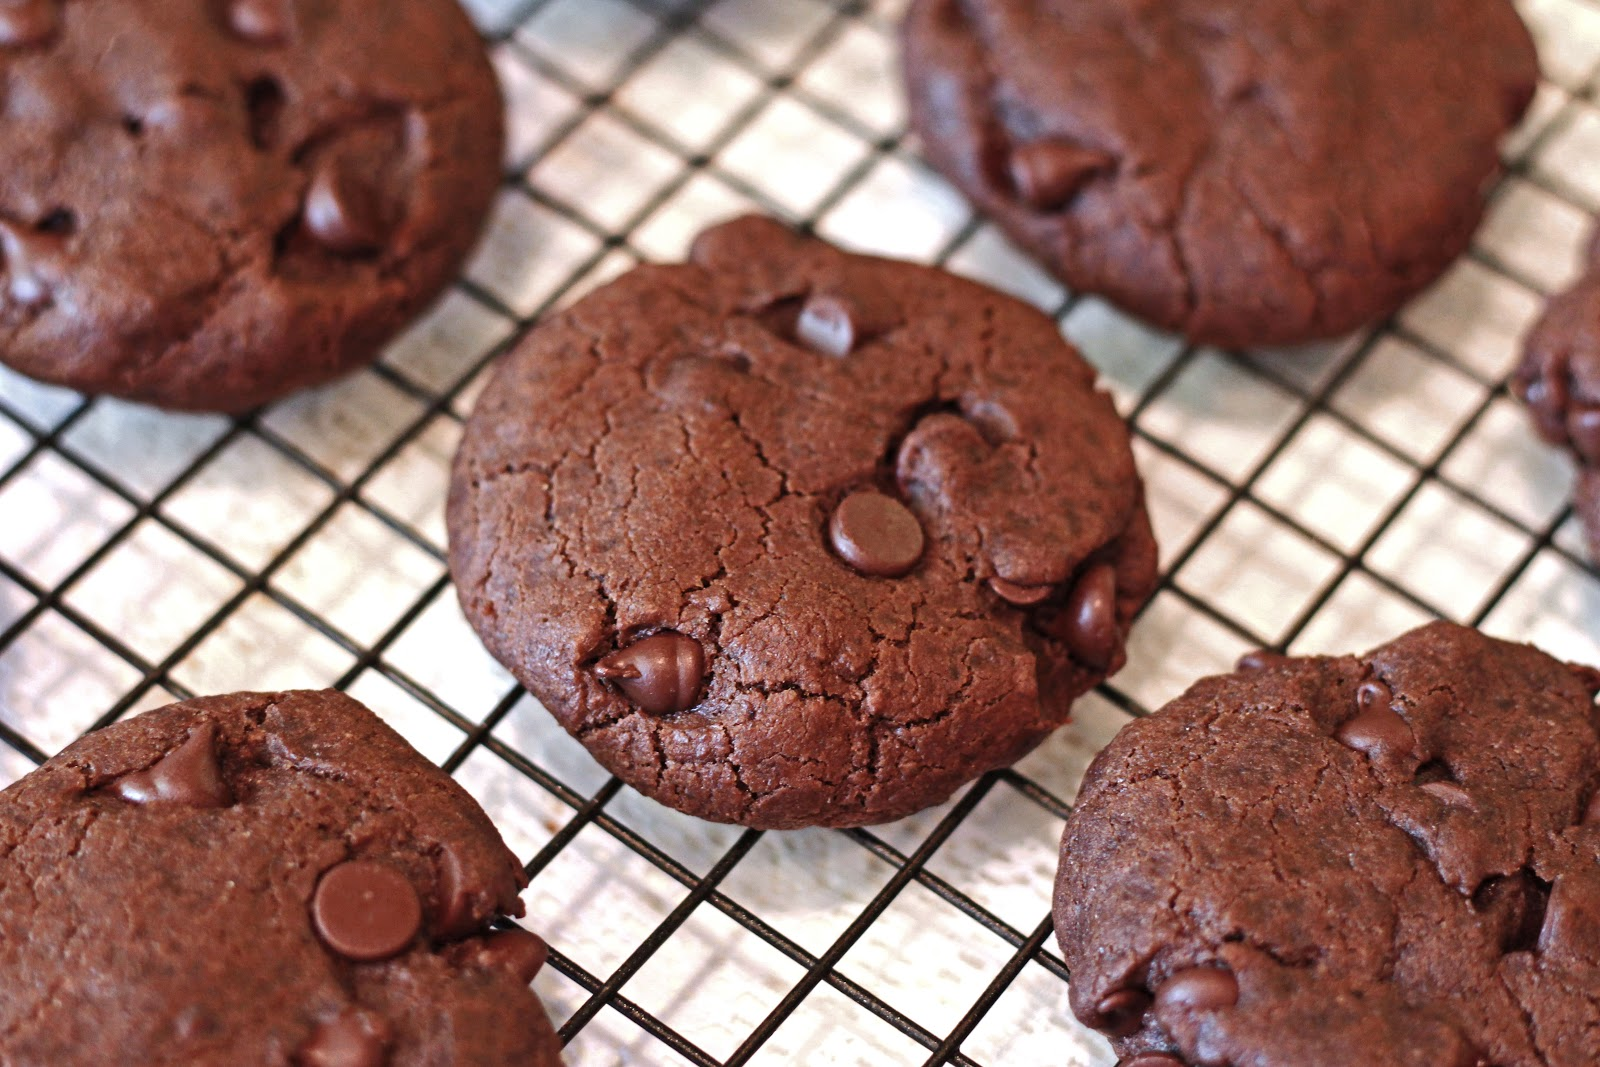 ... Gluten Free Treats: gluten free vegan chocolate chocolate chip cookies